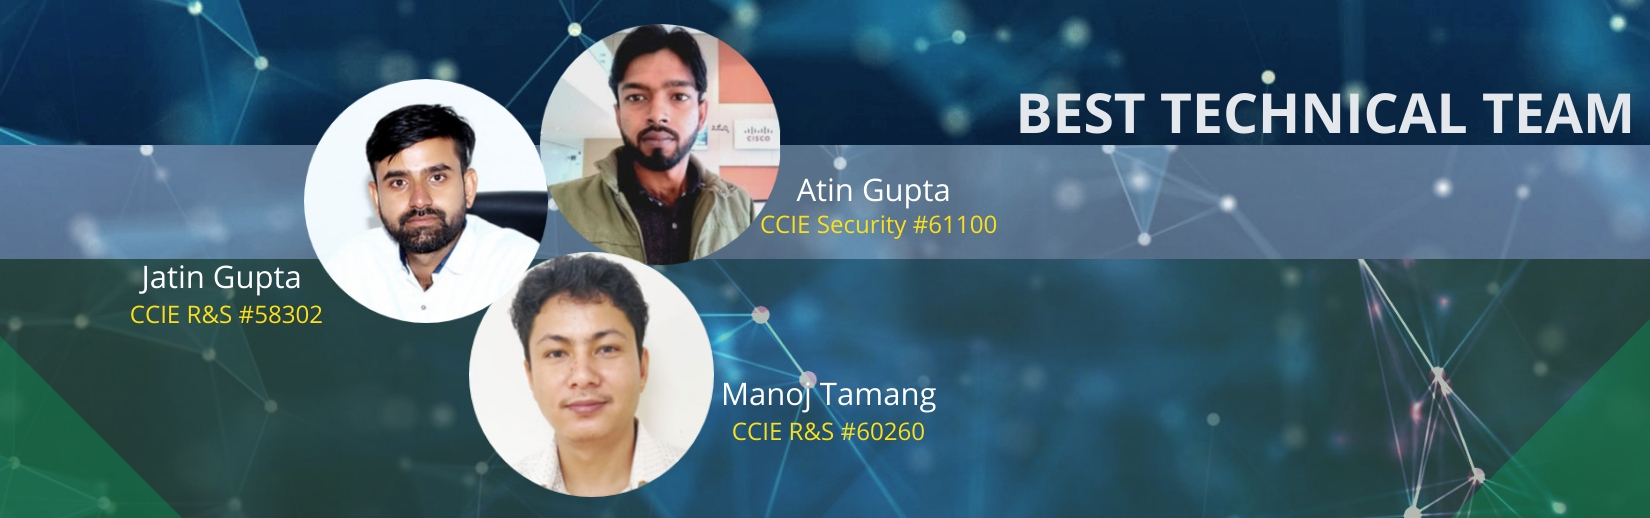 CCIE trainer in India